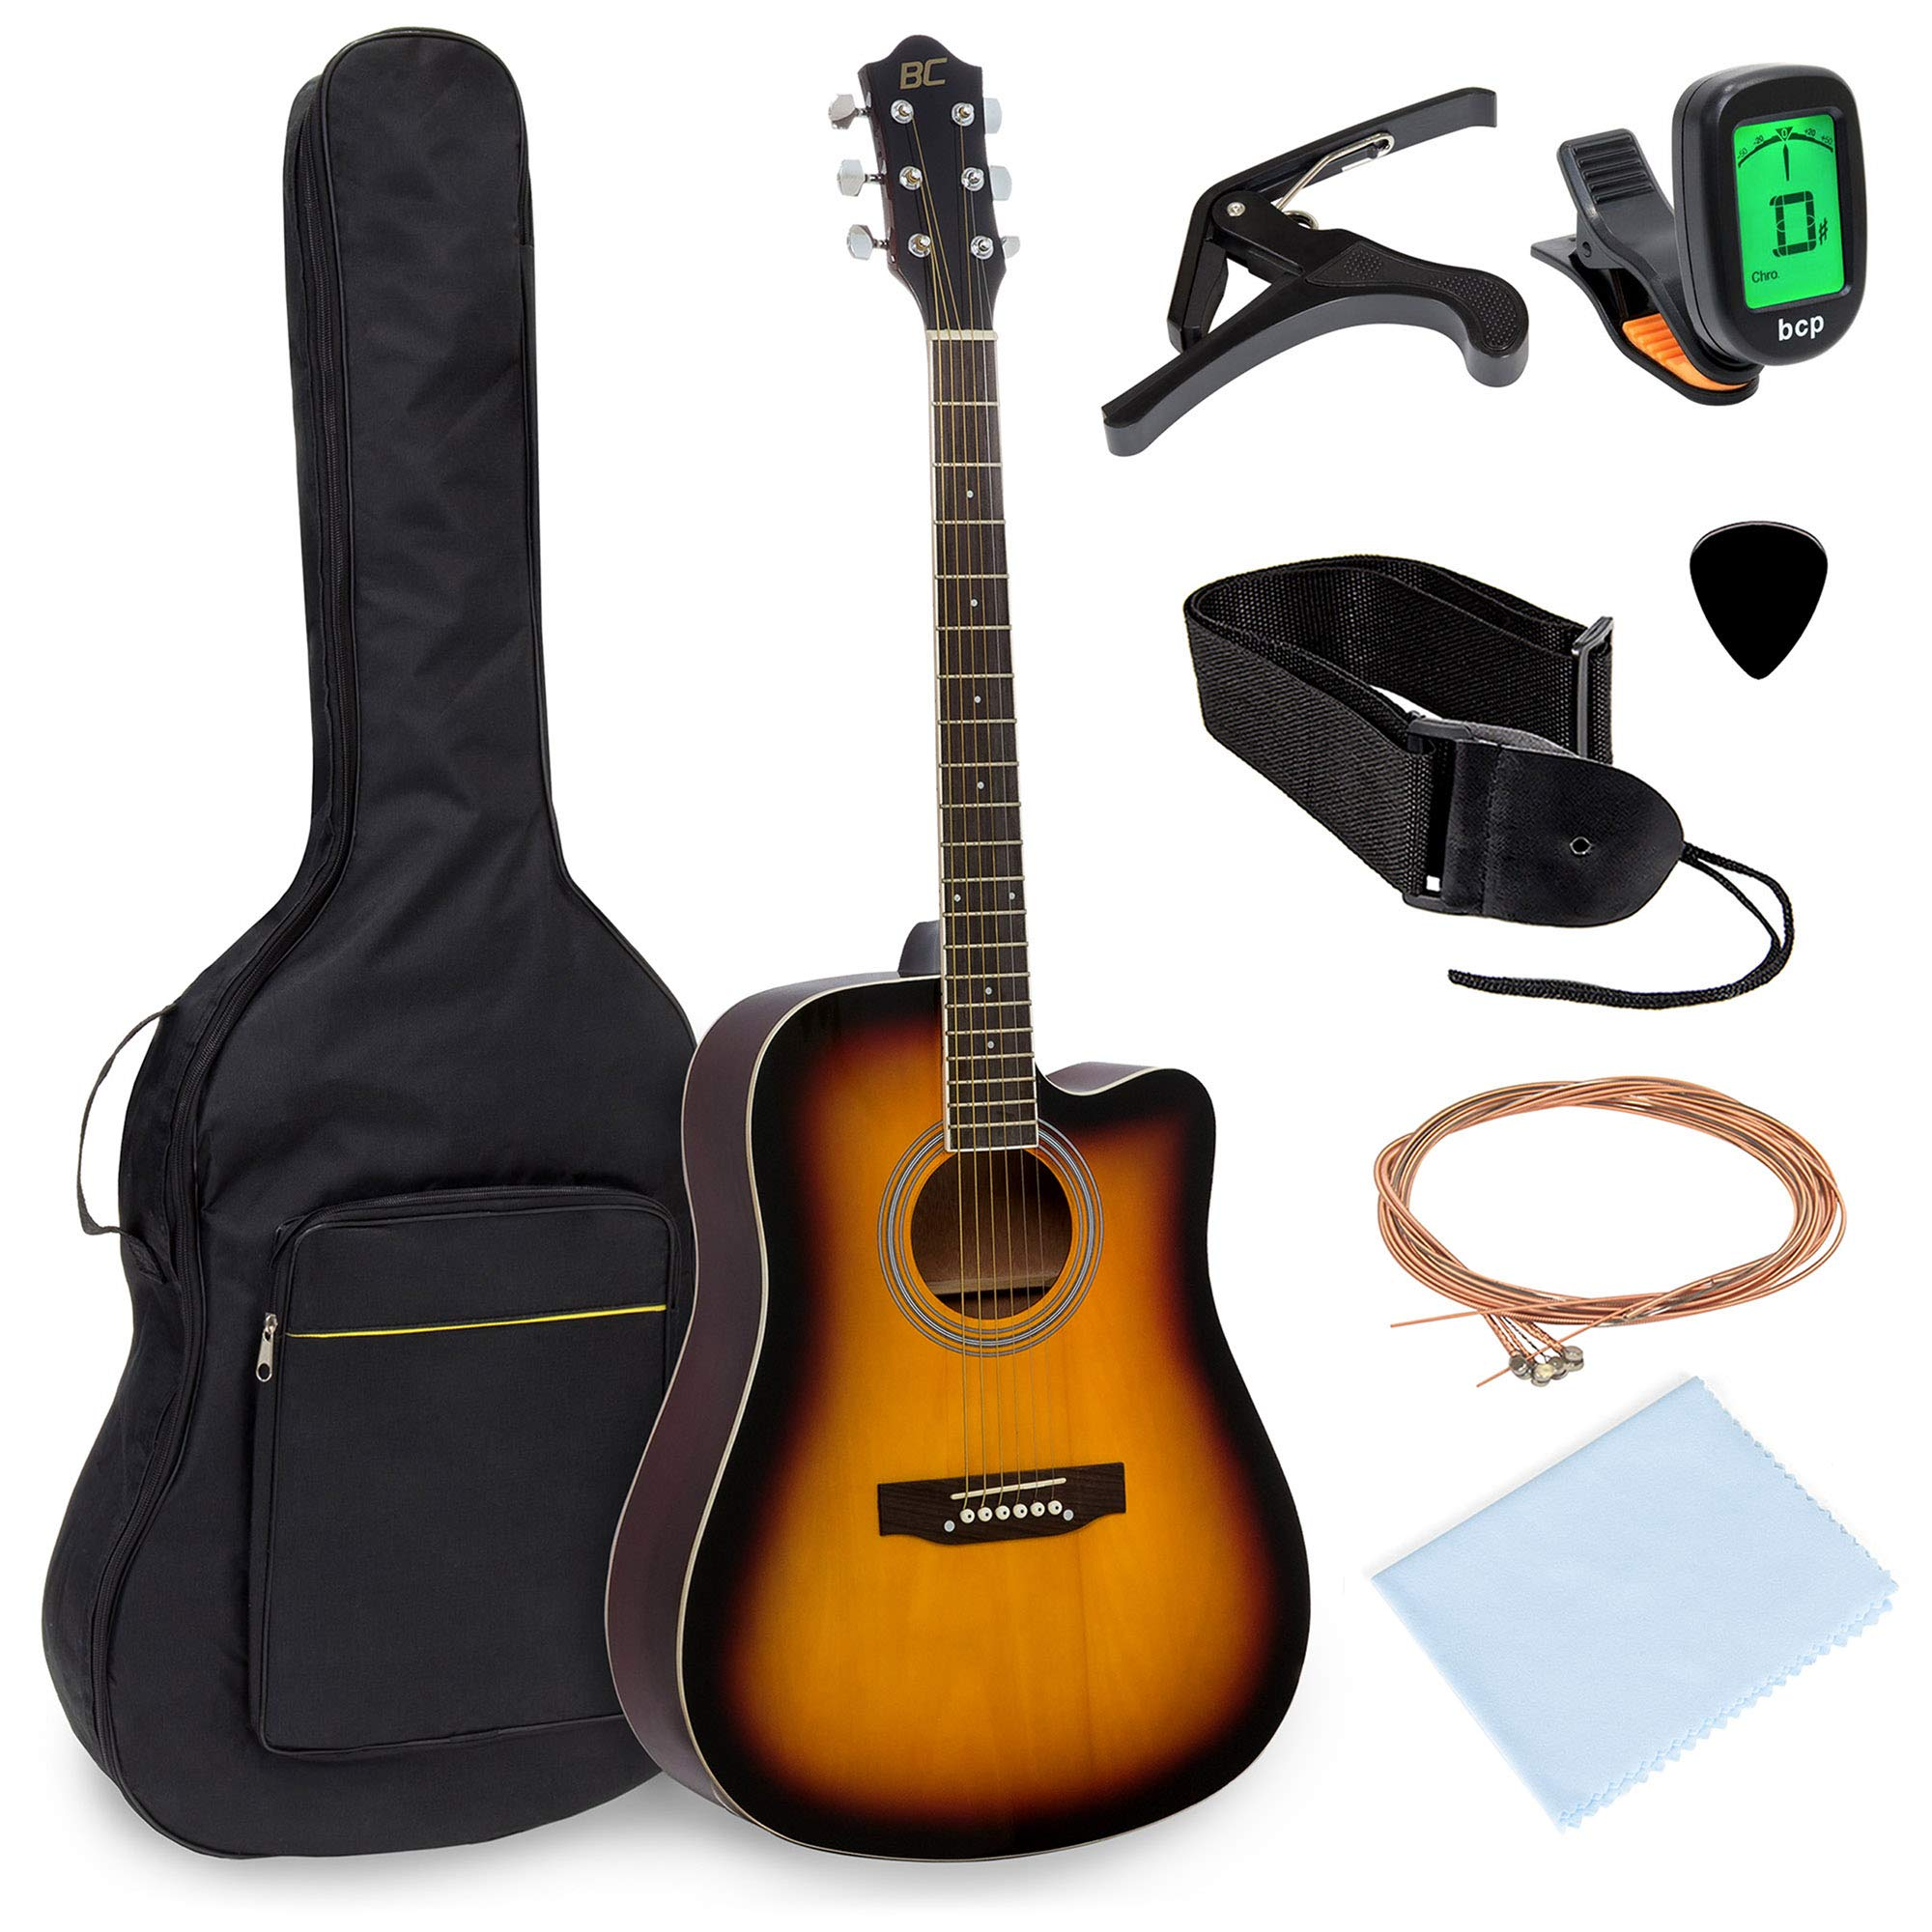 Best Choice Products 41in Full Size Beginner Acoustic Cutaway Guitar Set w/Case, Strap, Capo, Strings, Tuner - Sunburst by Best Choice Products